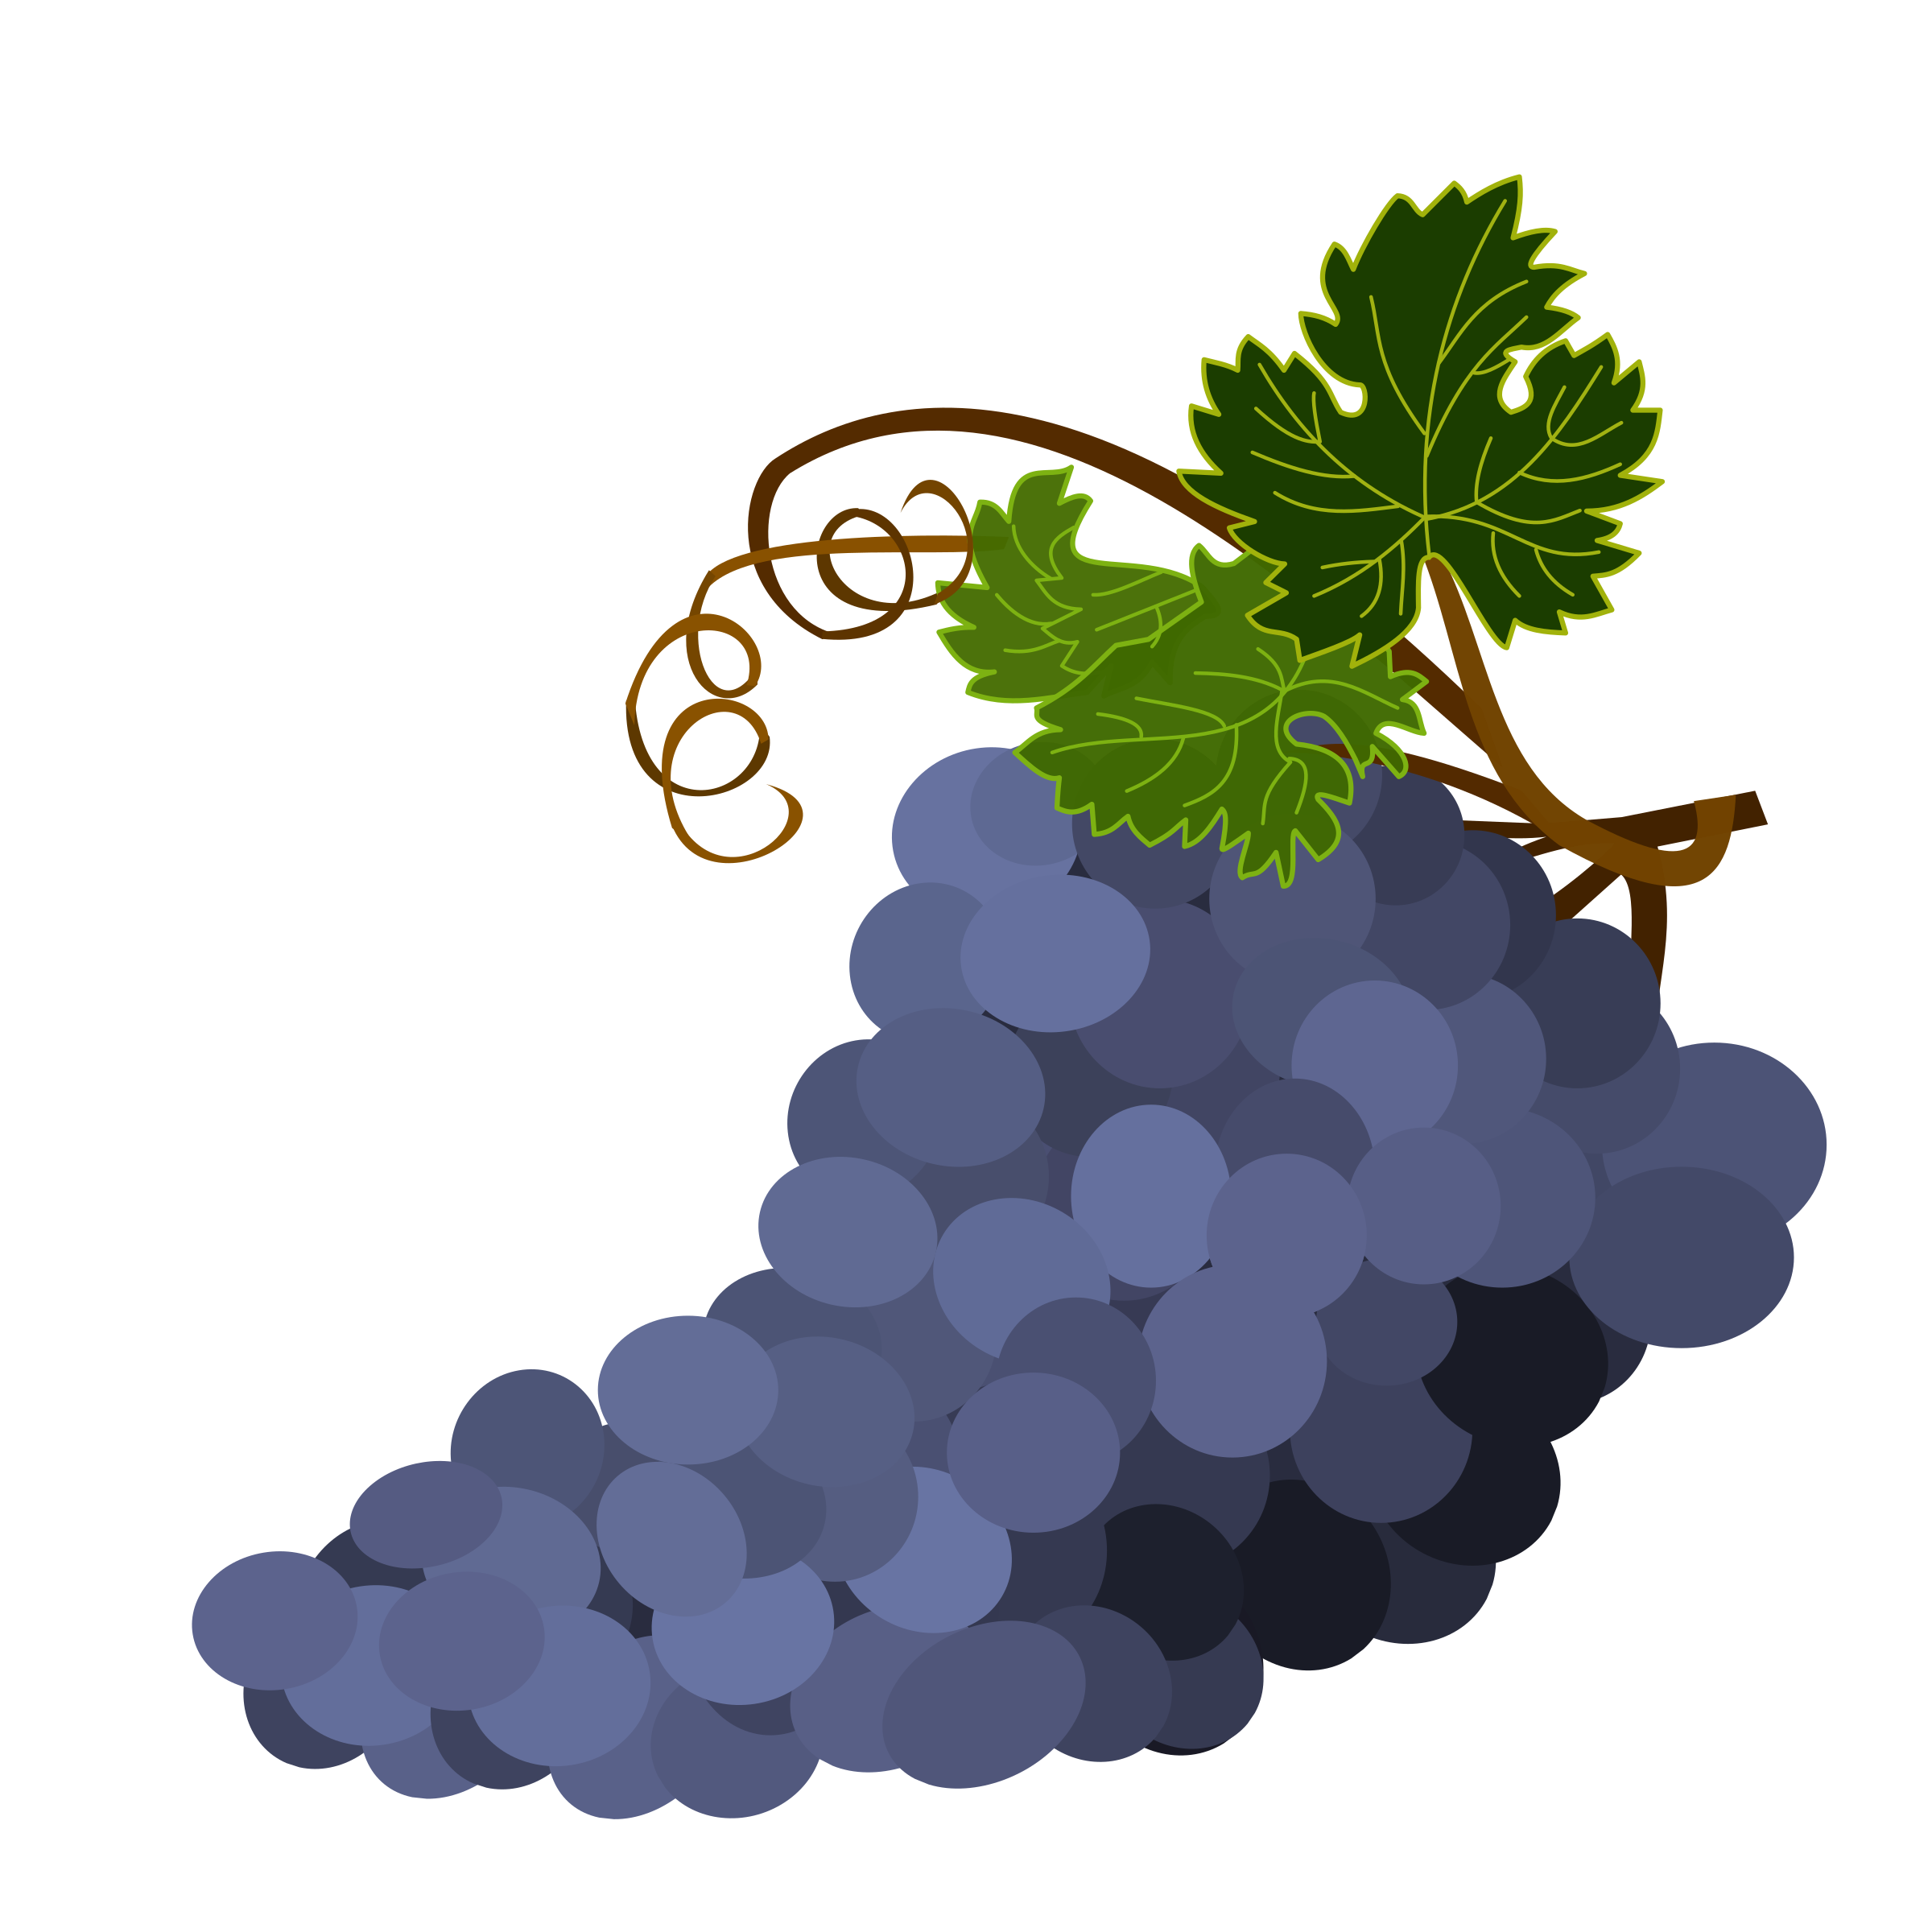 Grapes clipart real purple. Big image png